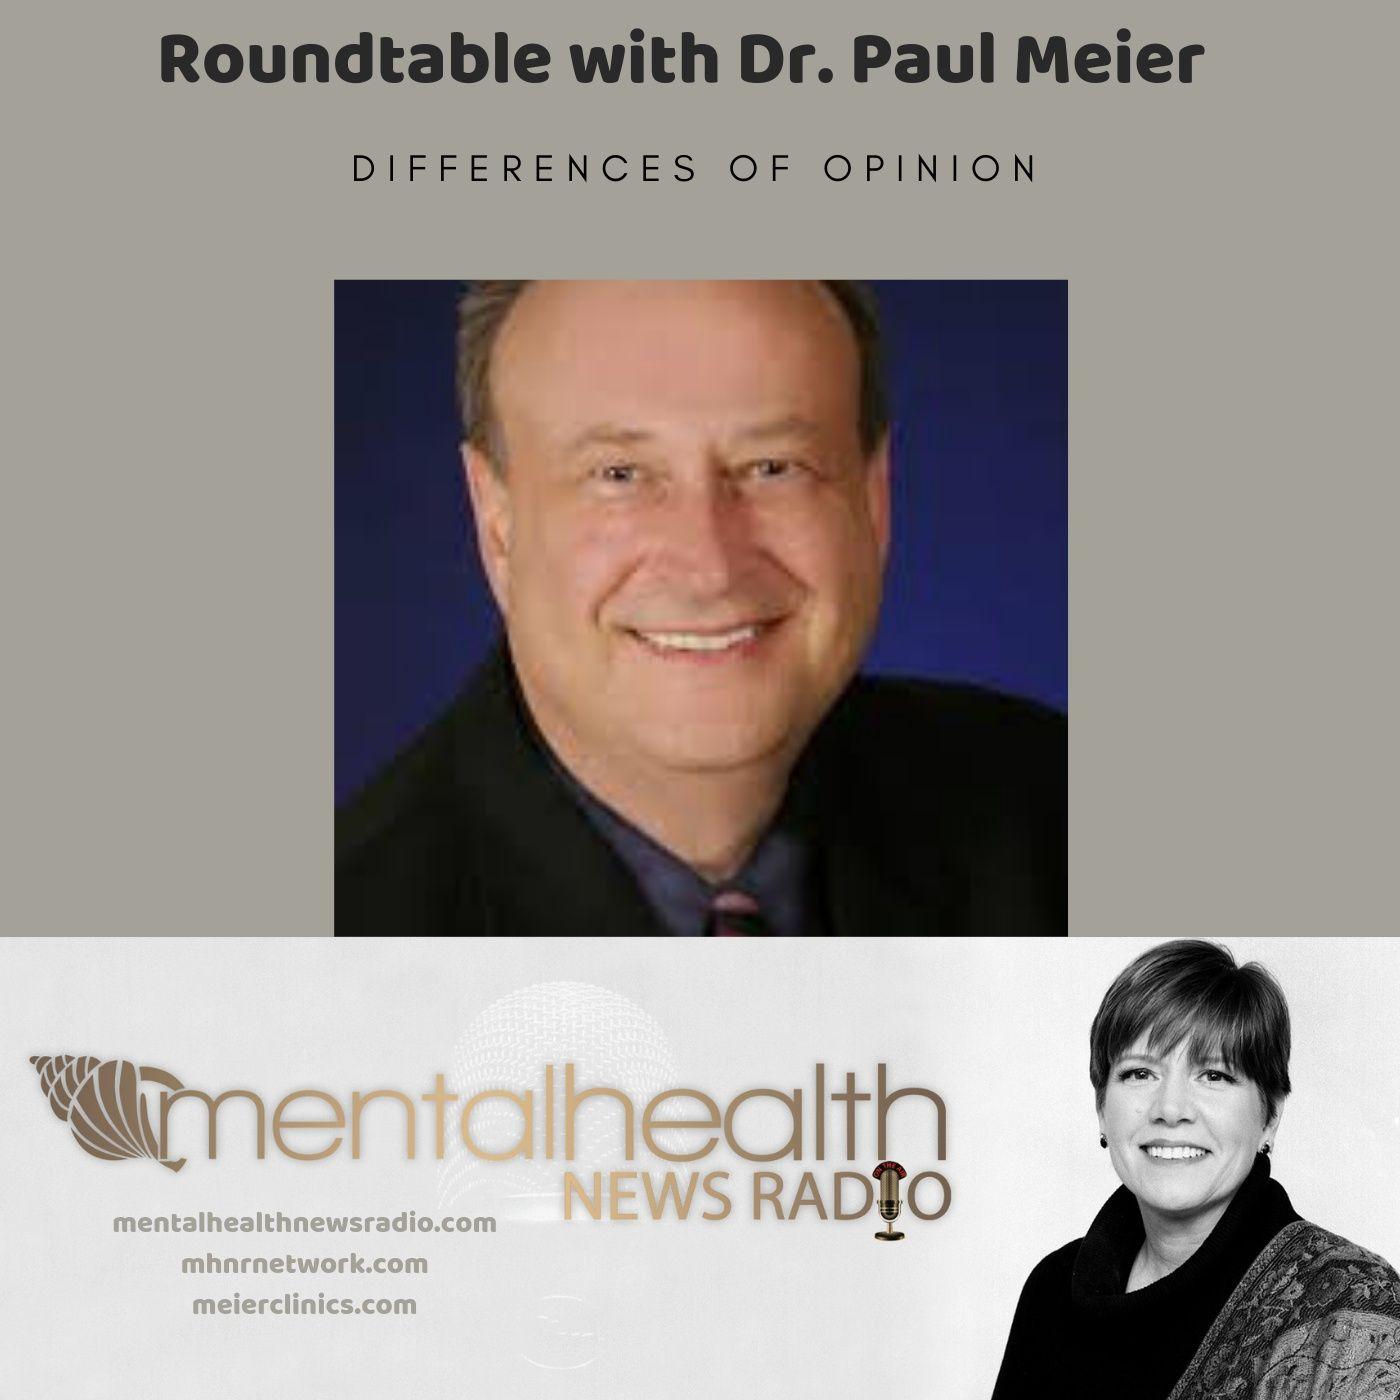 Mental Health News Radio - Roundtable with Dr. Paul Meier: Differences of Opinion